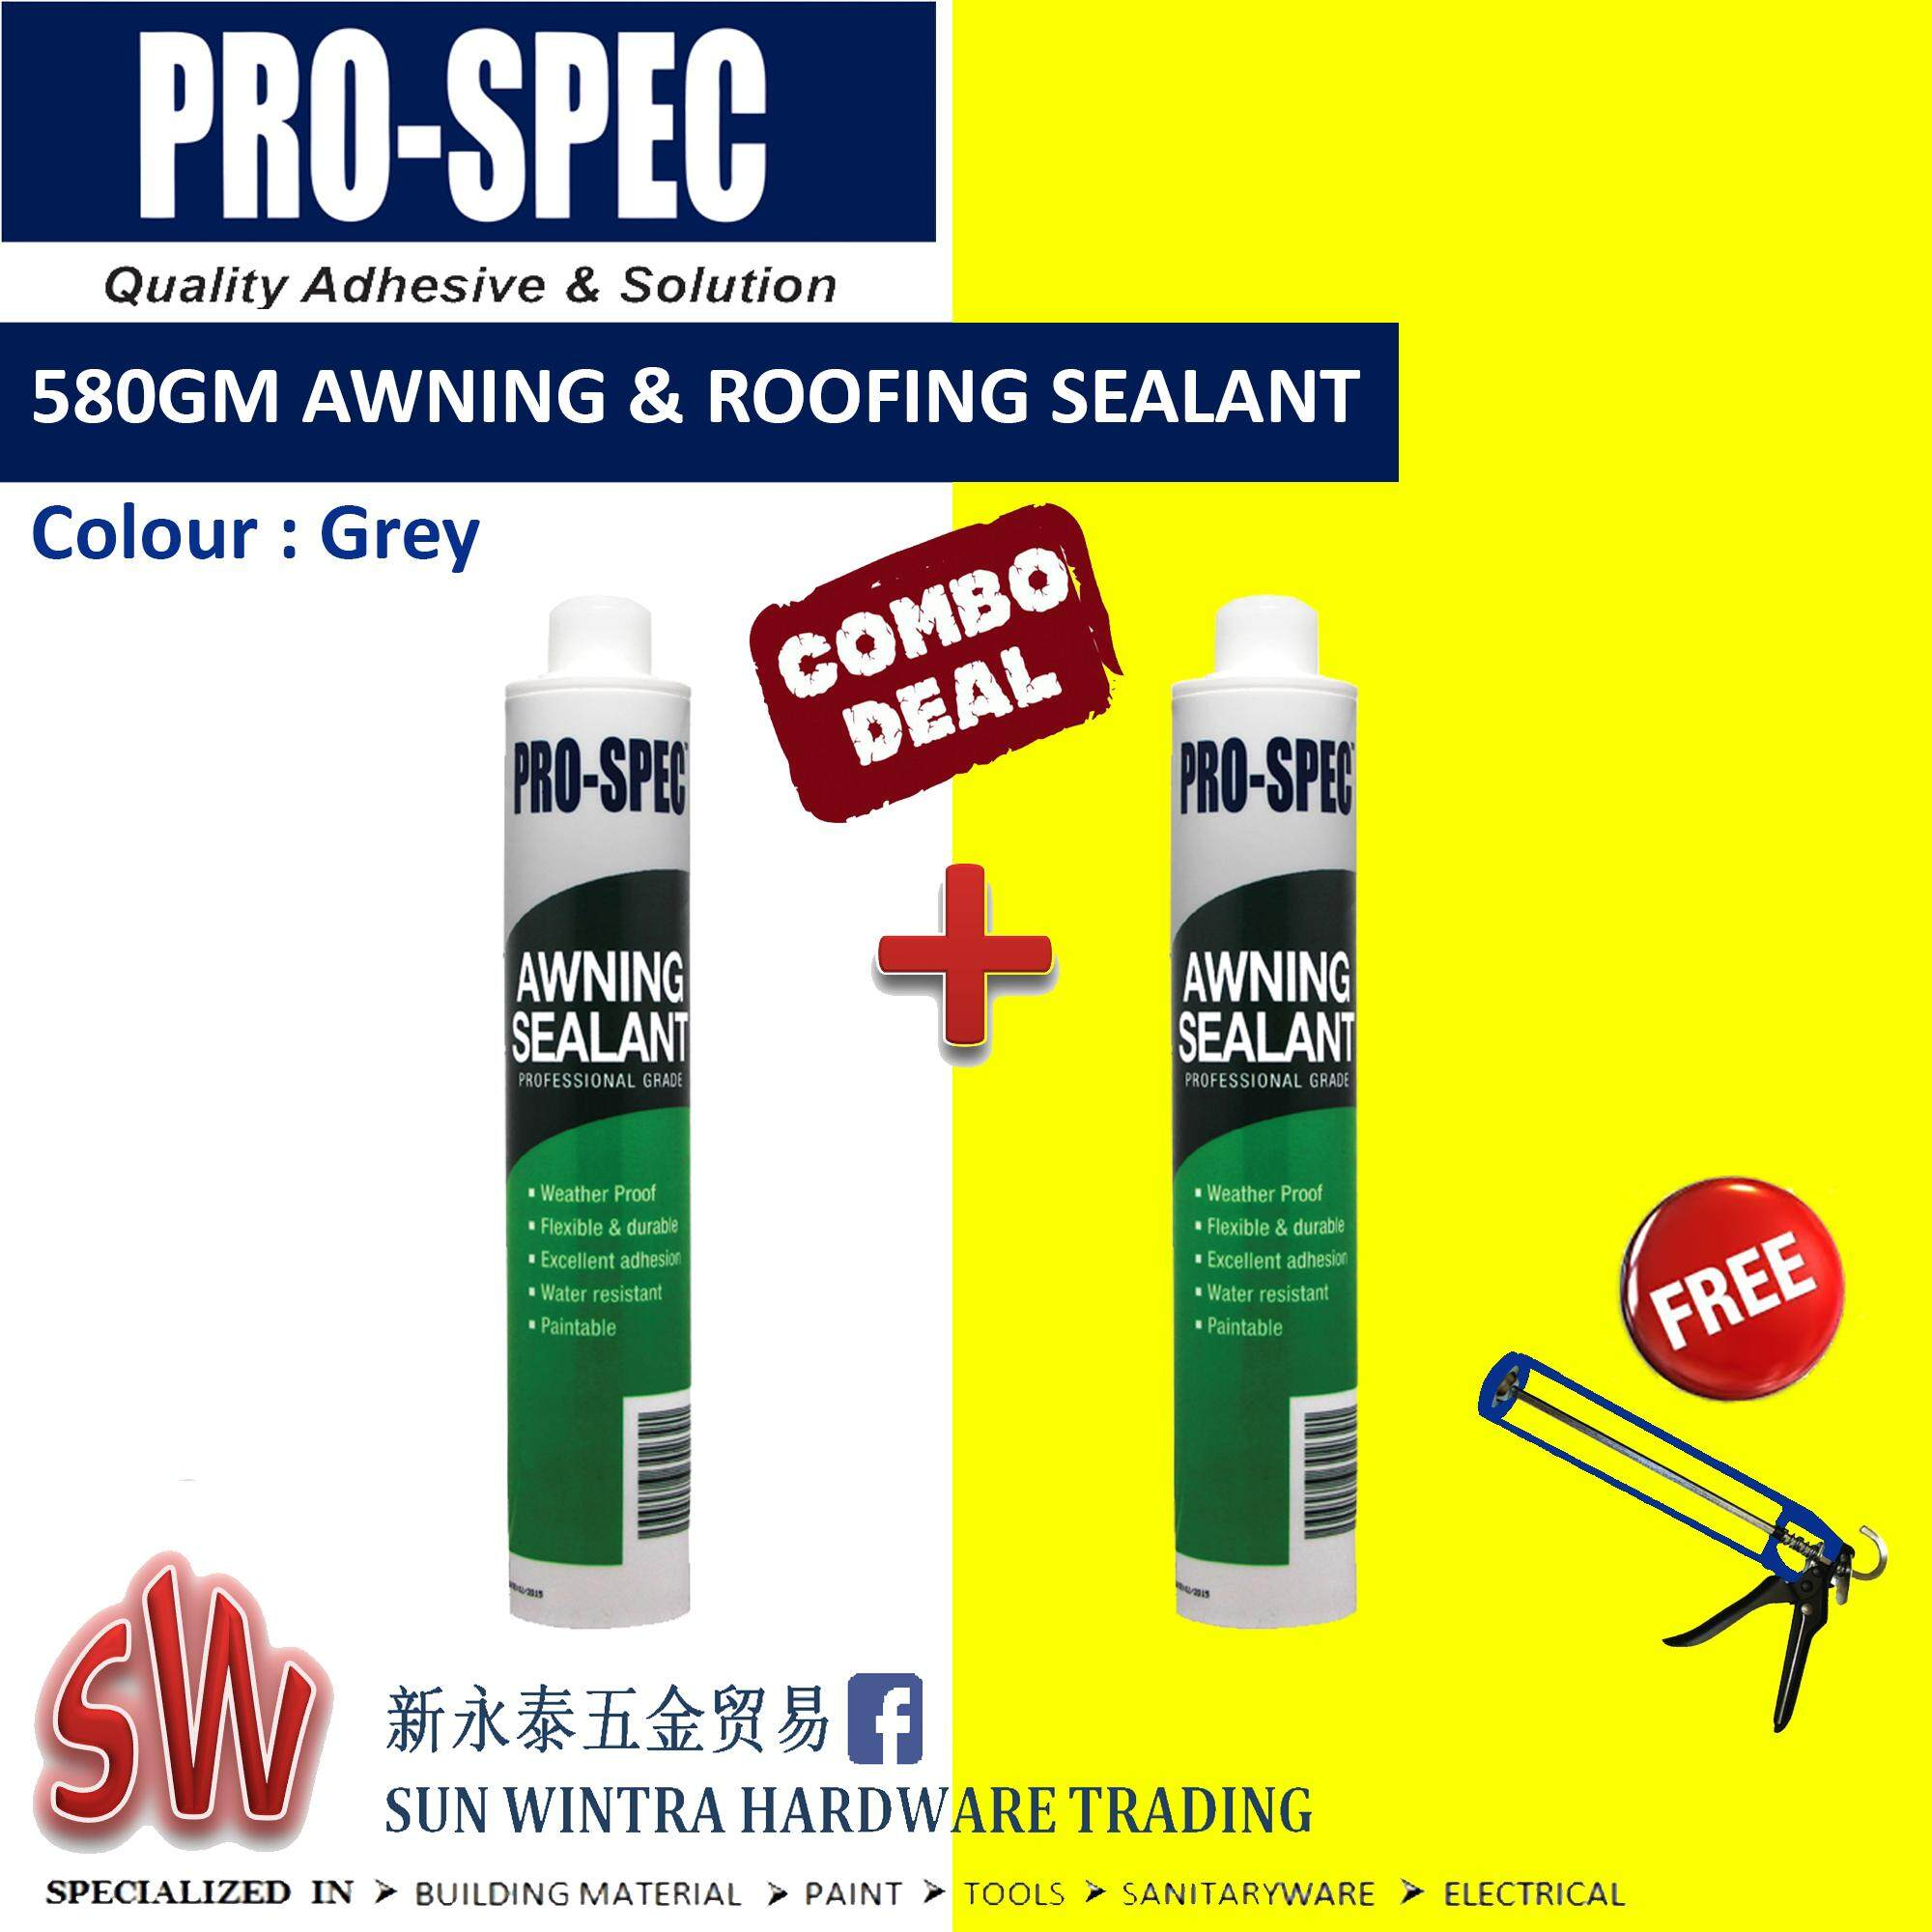 PRO-SPEC 2x Combo 580GM AWNING & ROOFING SEALANT (GREY) F.O.C Silicone Gun